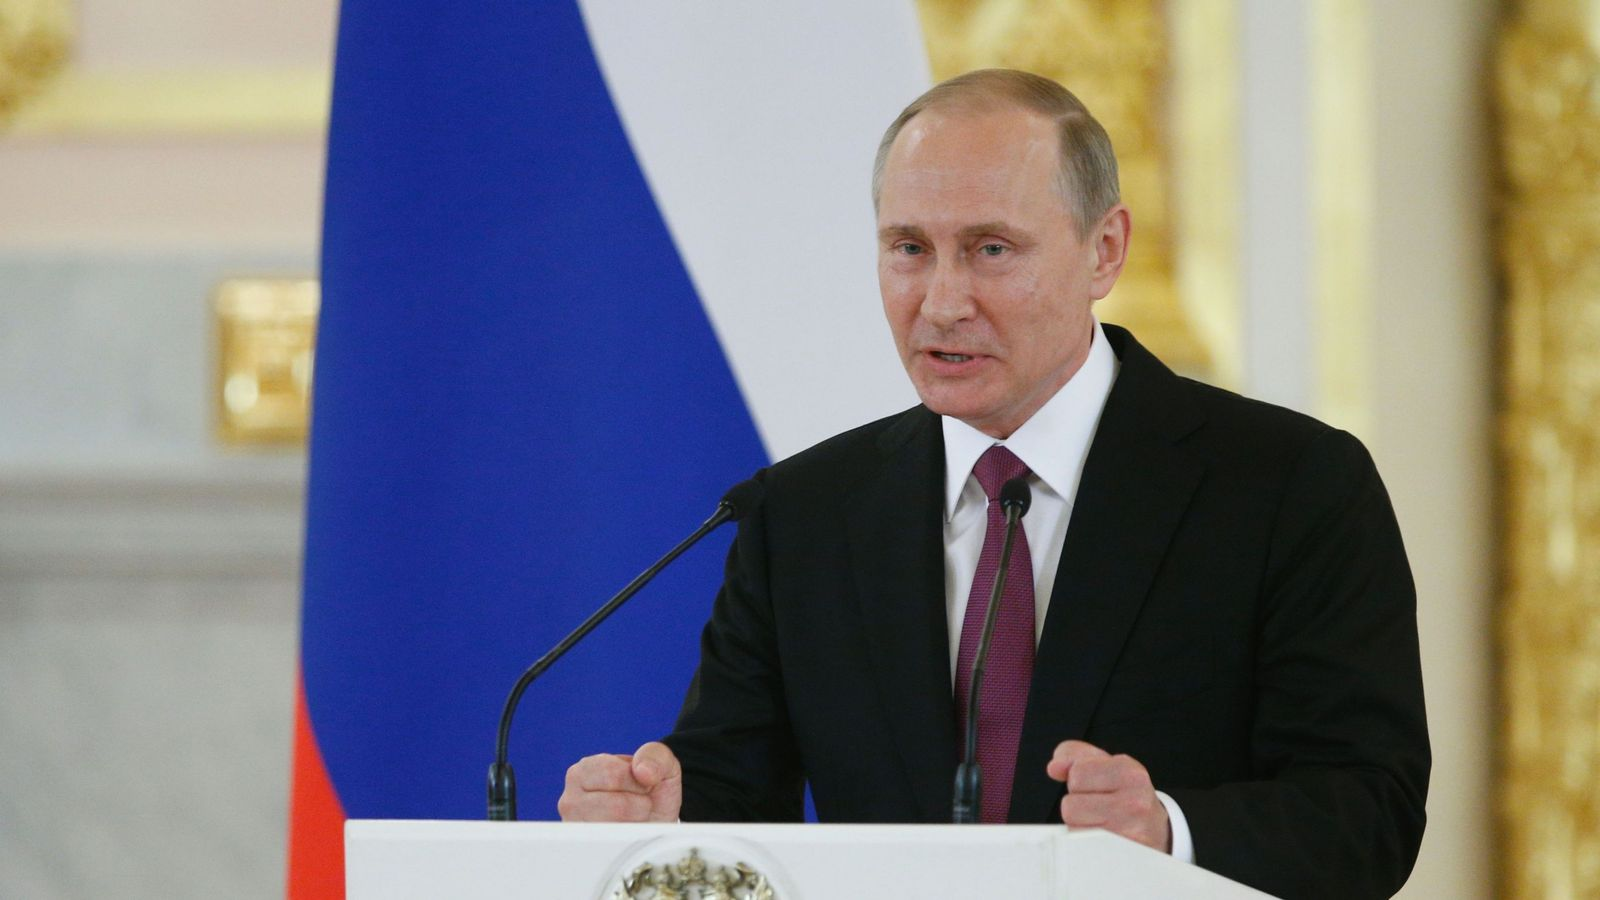 Vladimir Putin says the absence of Russian track and field athletes will devalue the Games